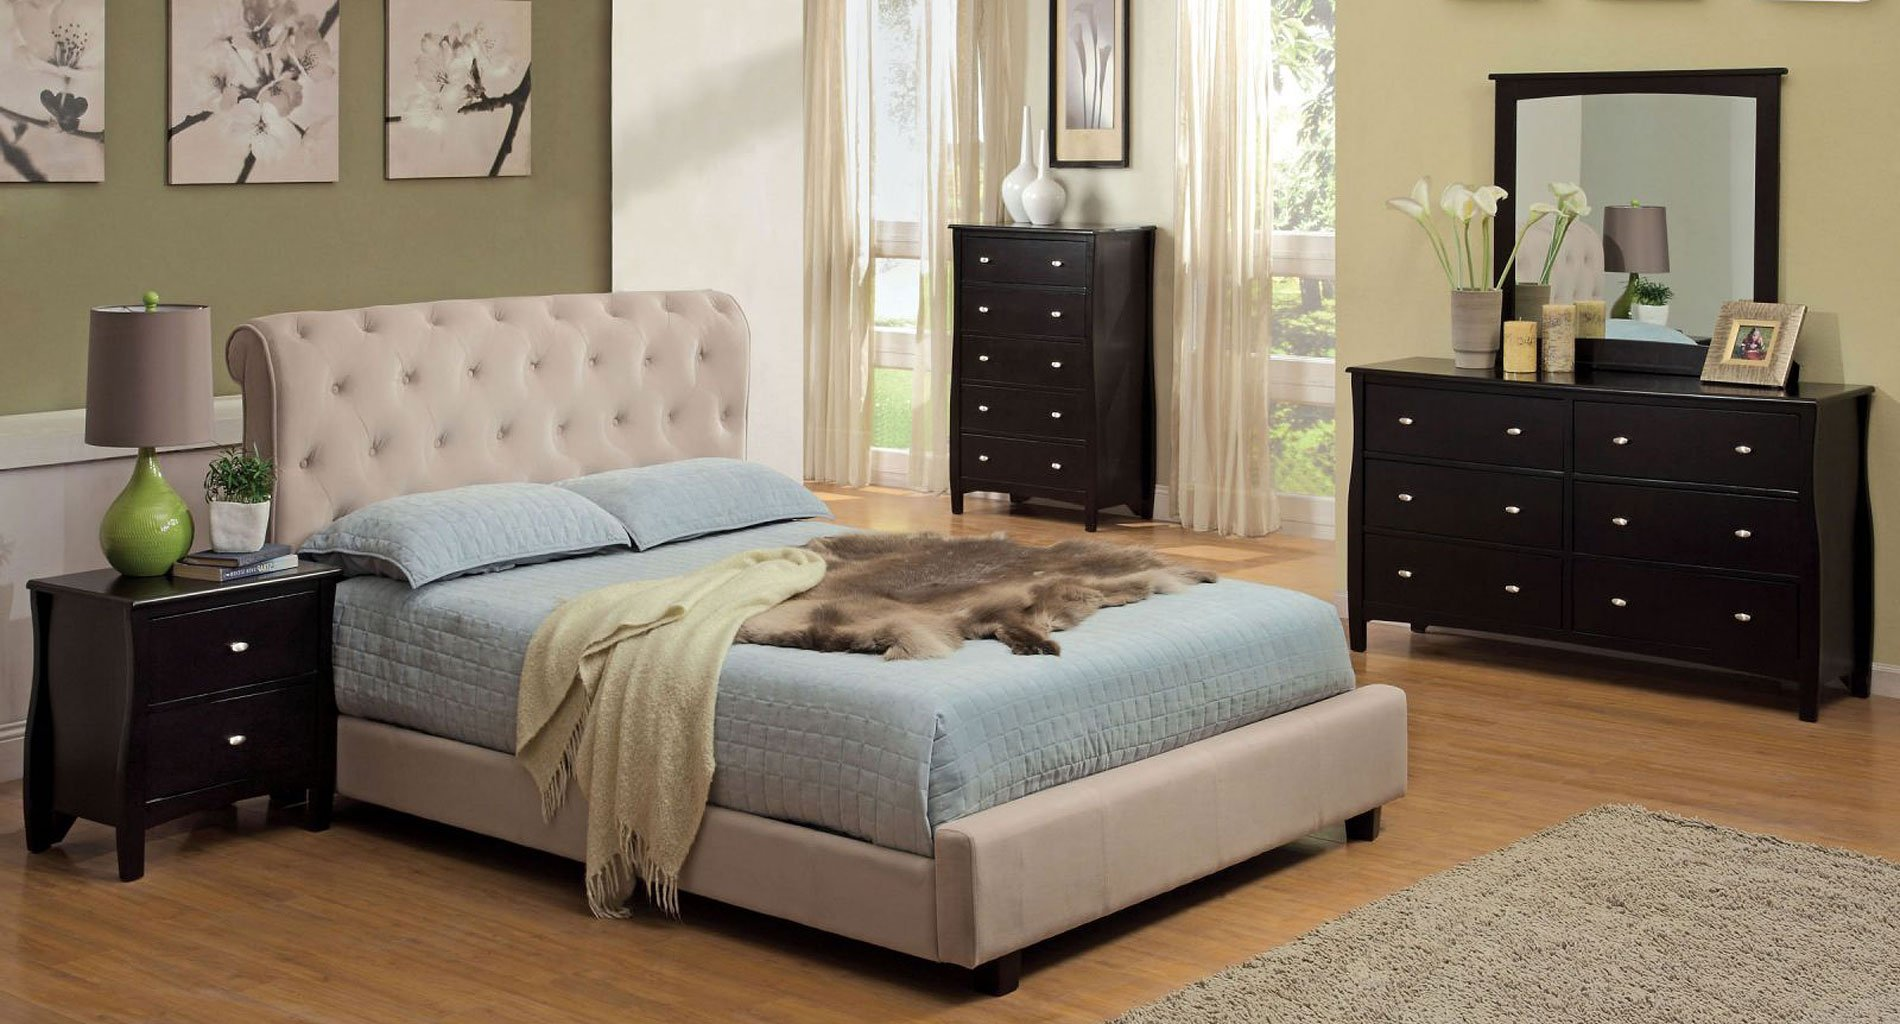 Milano Bedroom Set W/ Lemoore Bed By Furniture Of America